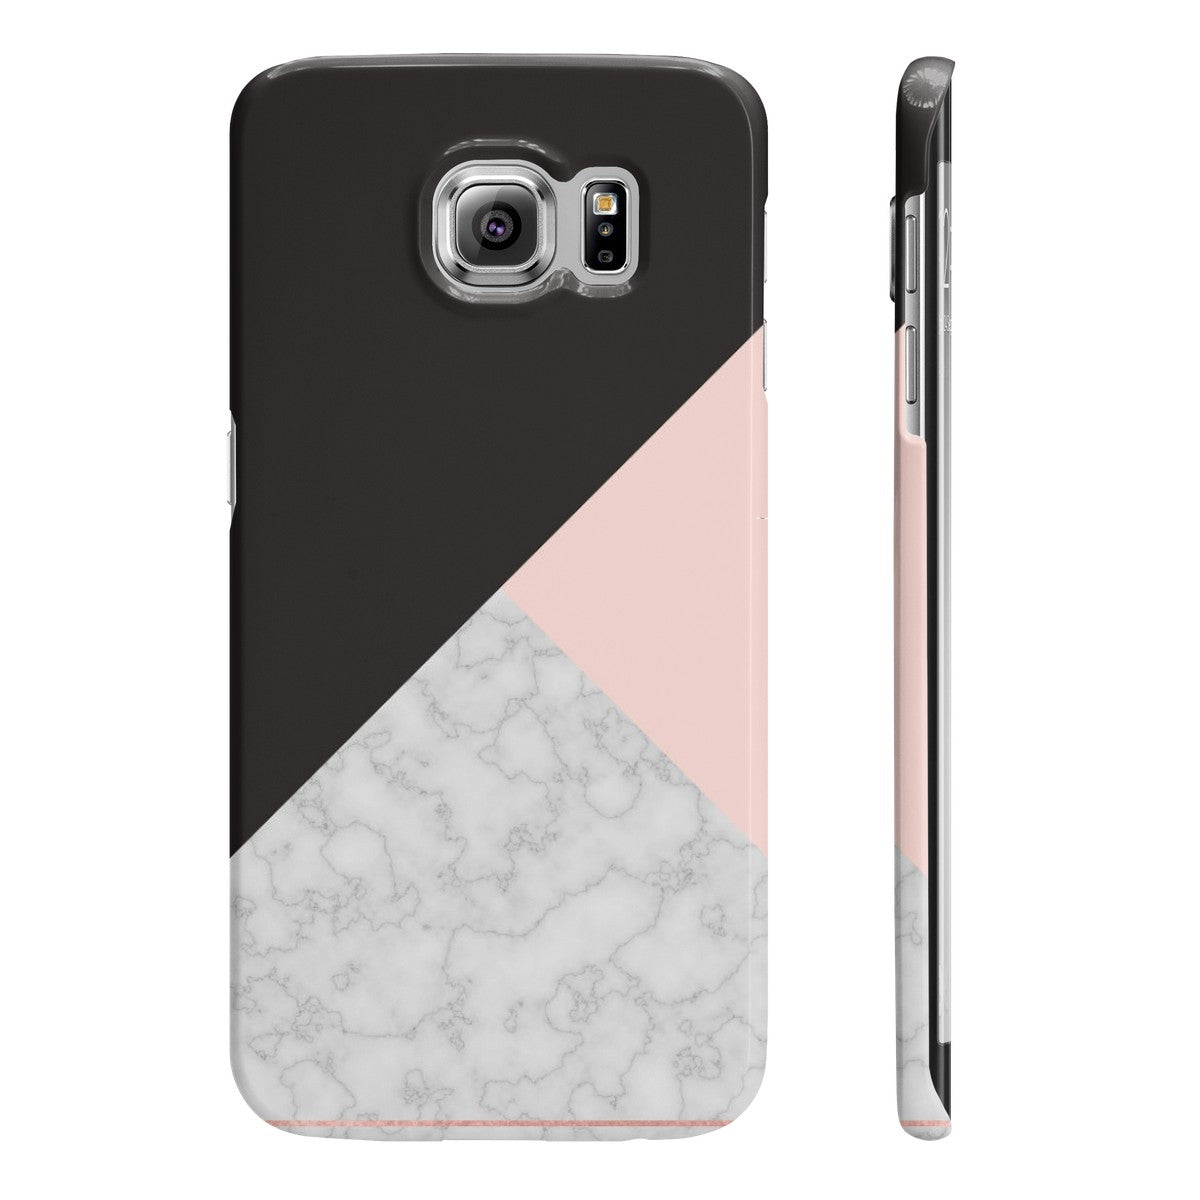 Stylish Colors Slim Phone Cases